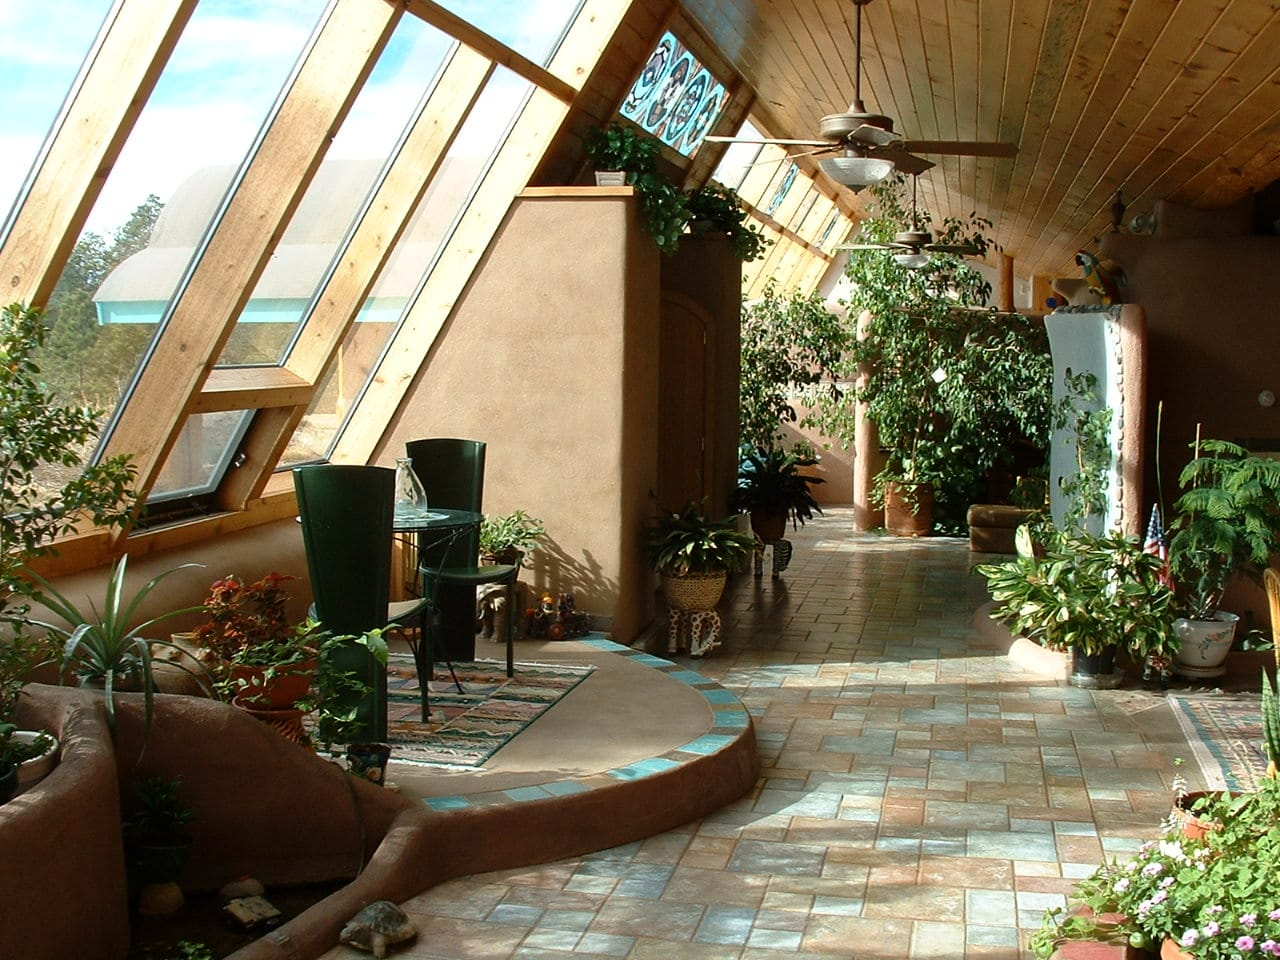 maison alternative pas chère earthship